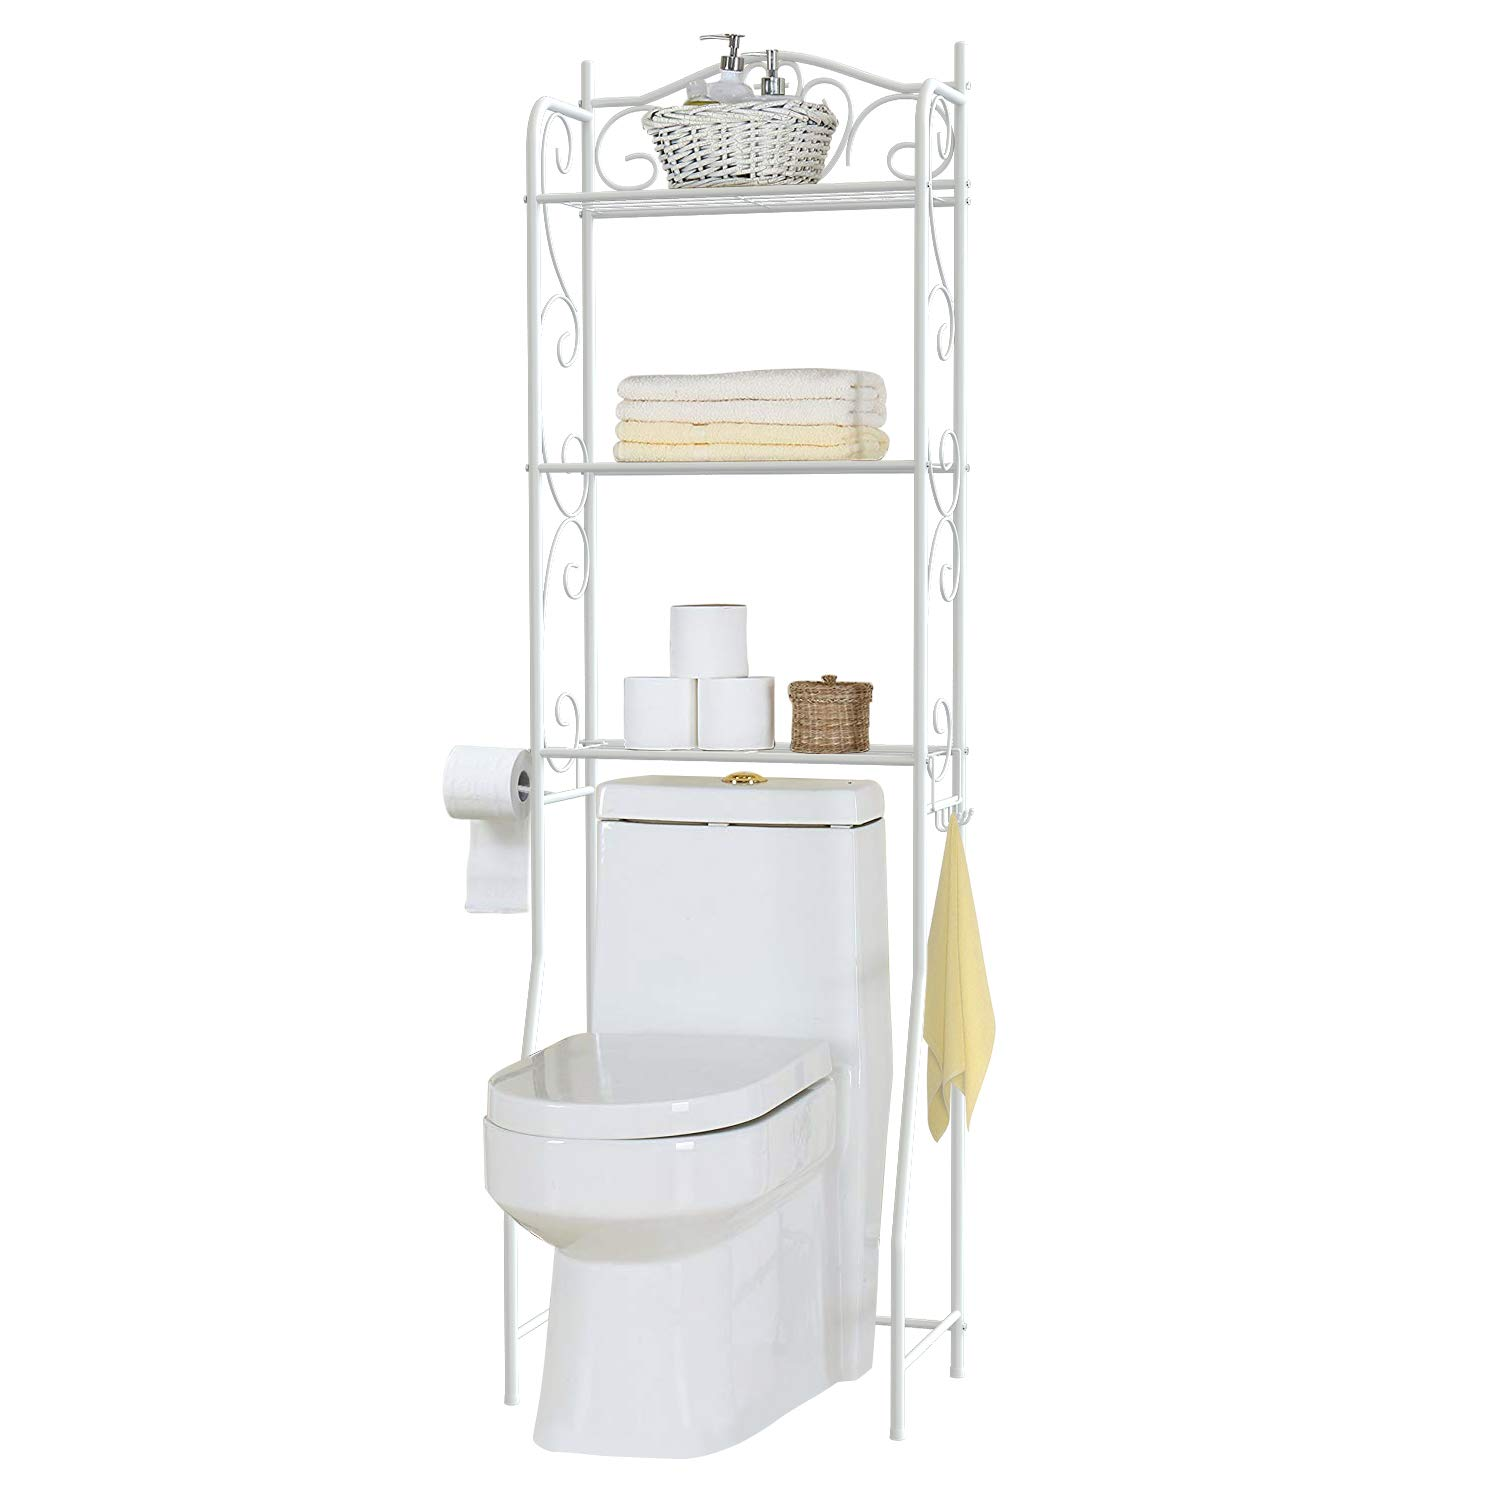 HOME BI Over The Toilet Storage Bathroom Spacesaver,3 Shelves Etagere Freestanding Bathroom Shelf Storage Organizer Toilet Rack with Toilet Paper Rack,White by HOME BI